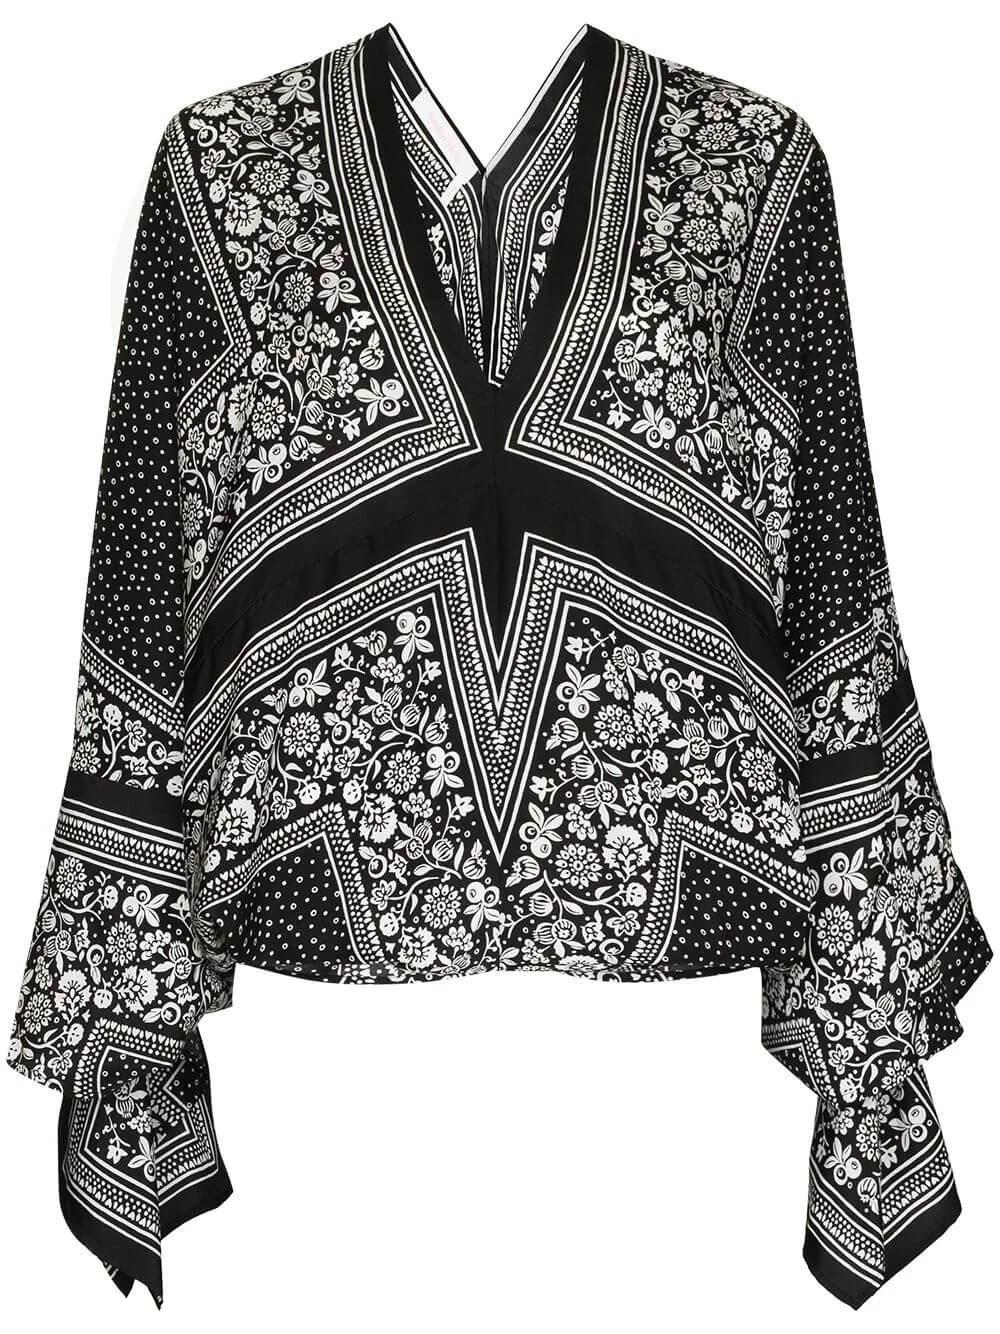 Portobello Printed Blouse